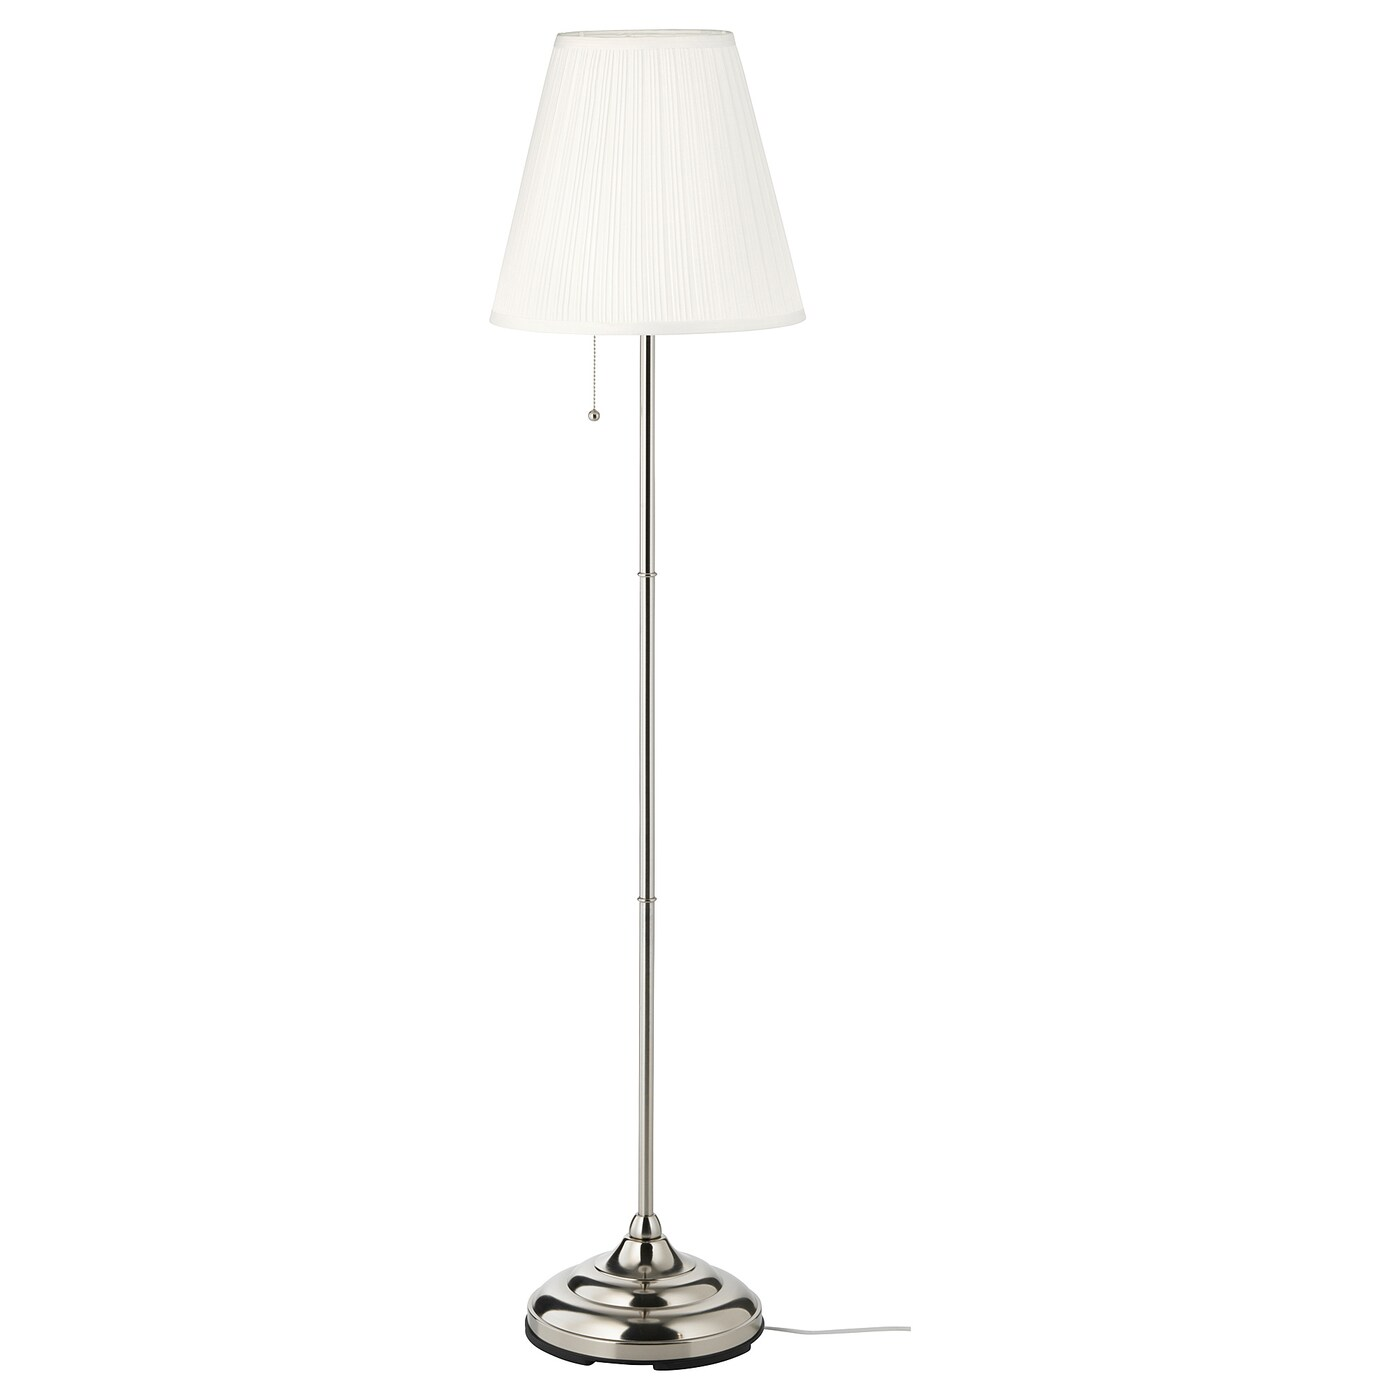 Cheap Stand Up Lamps Staanlampen Ikea